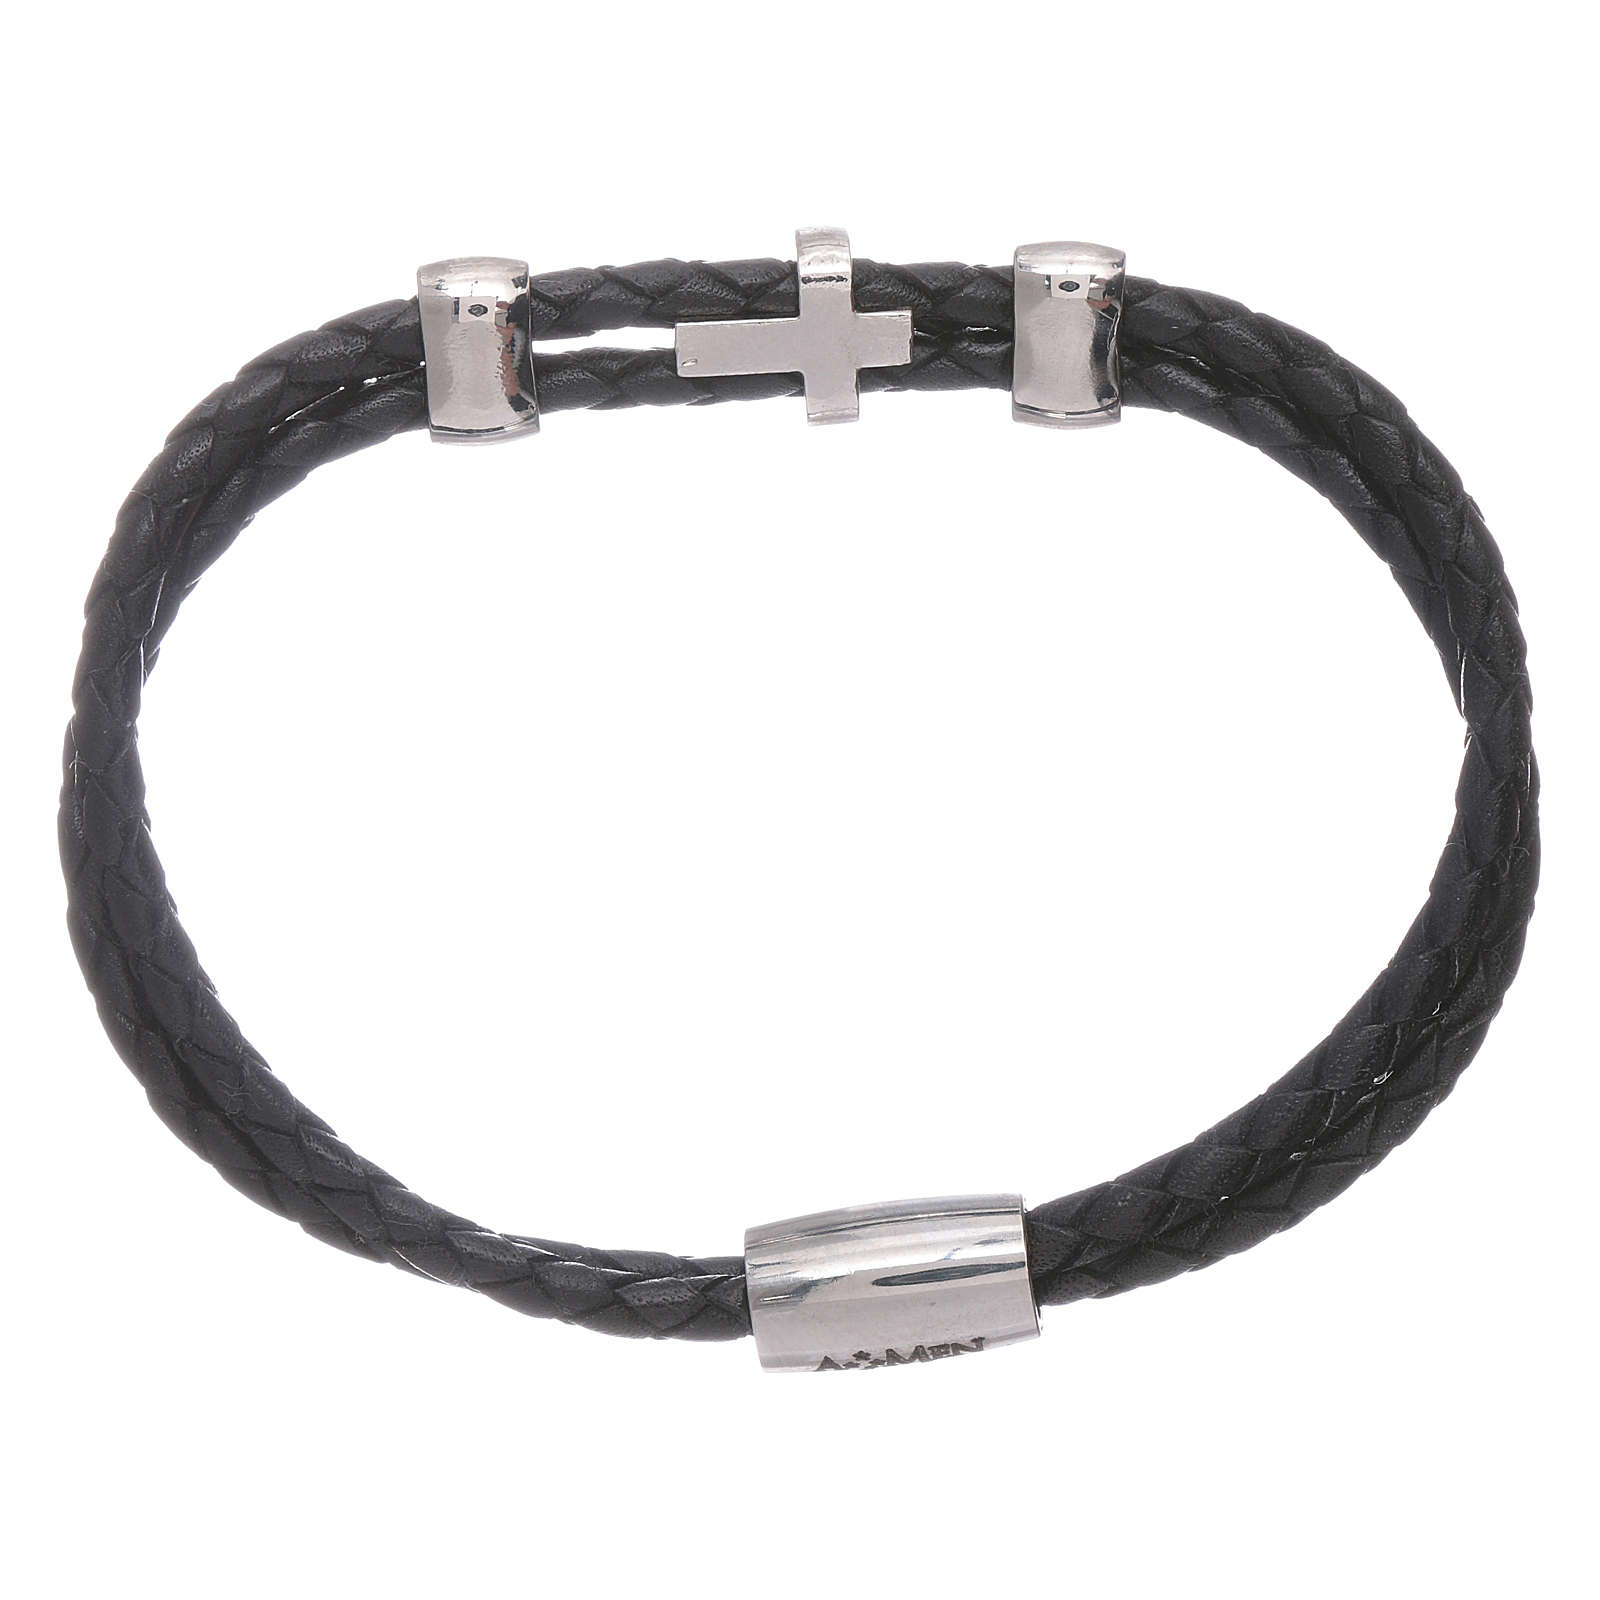 AMEN woven leather bracelet with zirconate cross and inserts 4